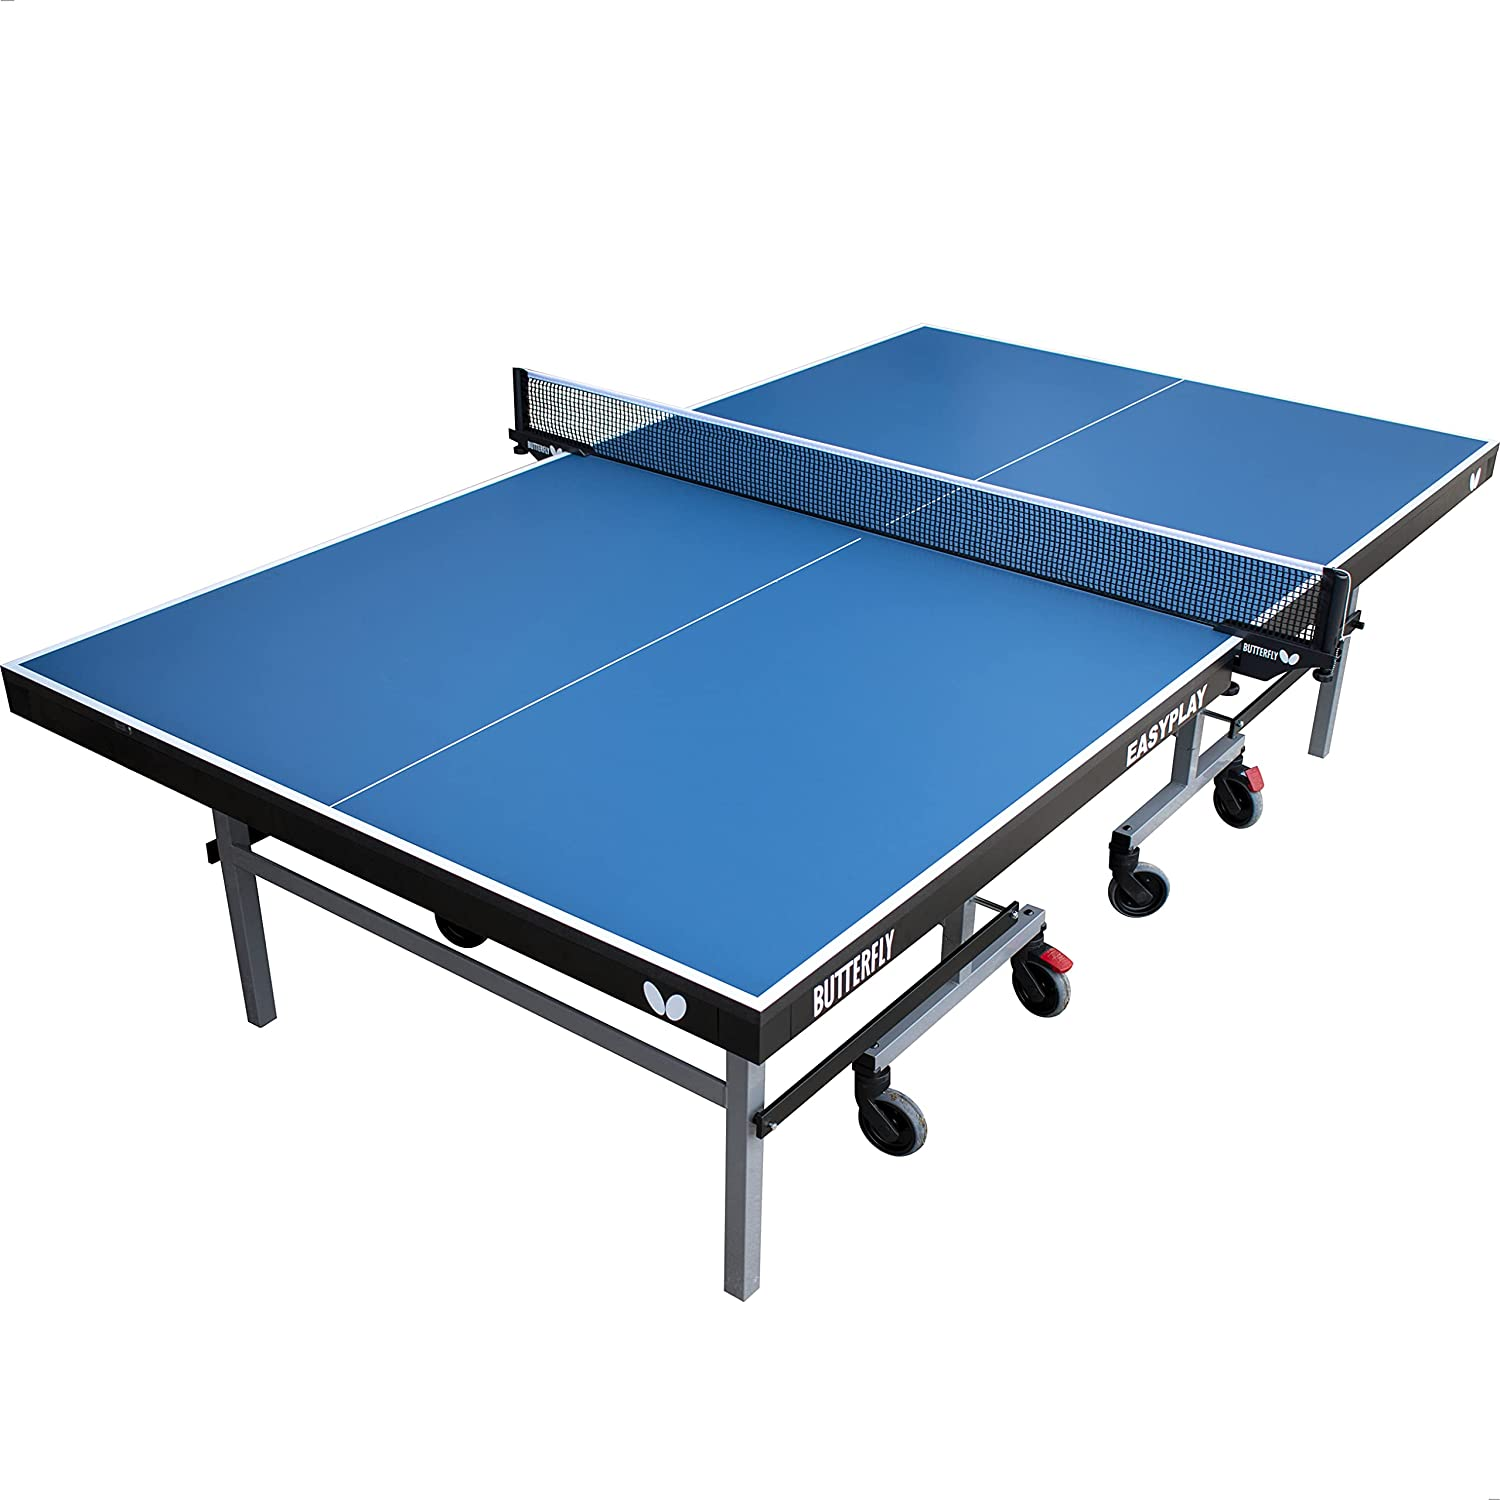 Branded goods Butterfly Easyplay Super special price 22 Table Tennis Ping I for Pong